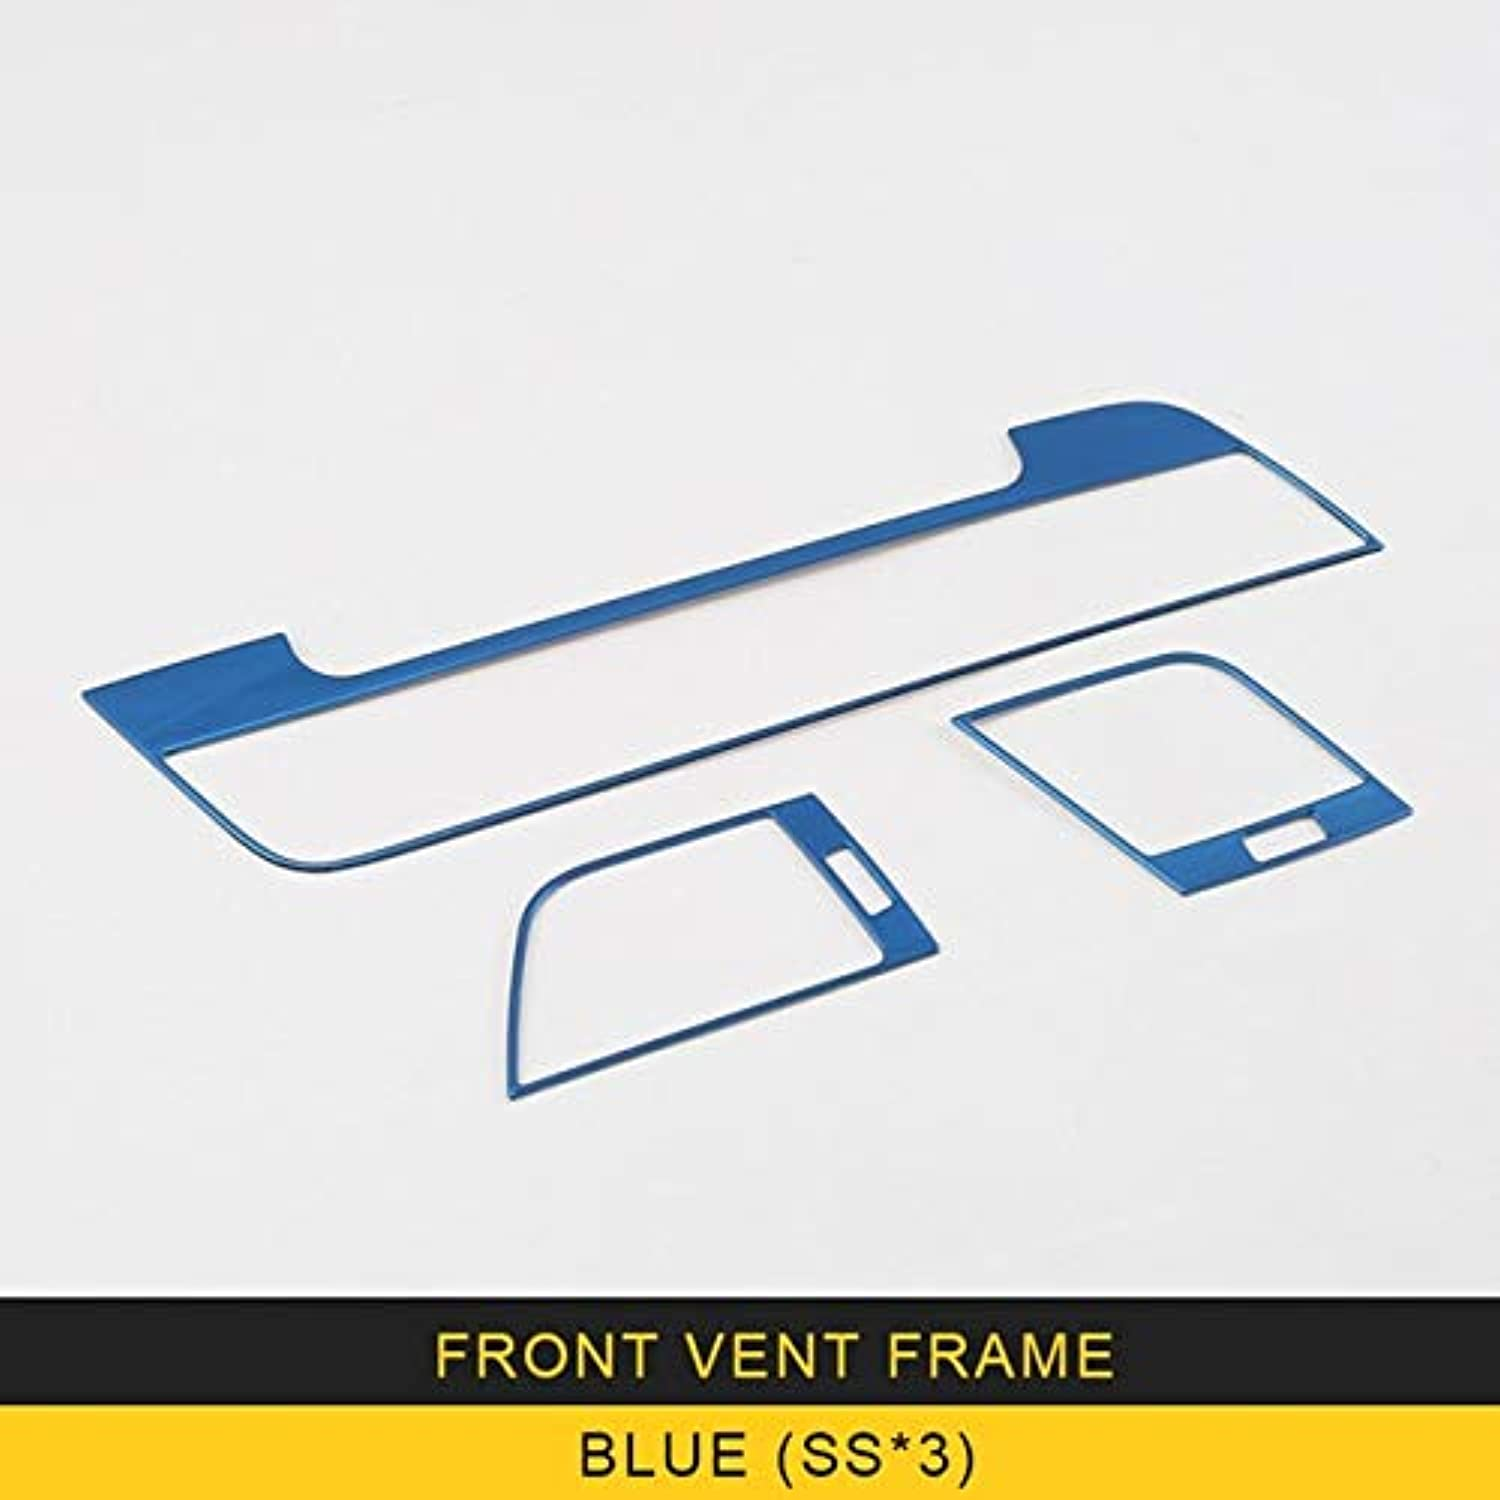 Stainless Steel Front airCondition Vent Frame Trim Cover for Audi Q5 2018 Accessories  (color Name  blueeeX3)